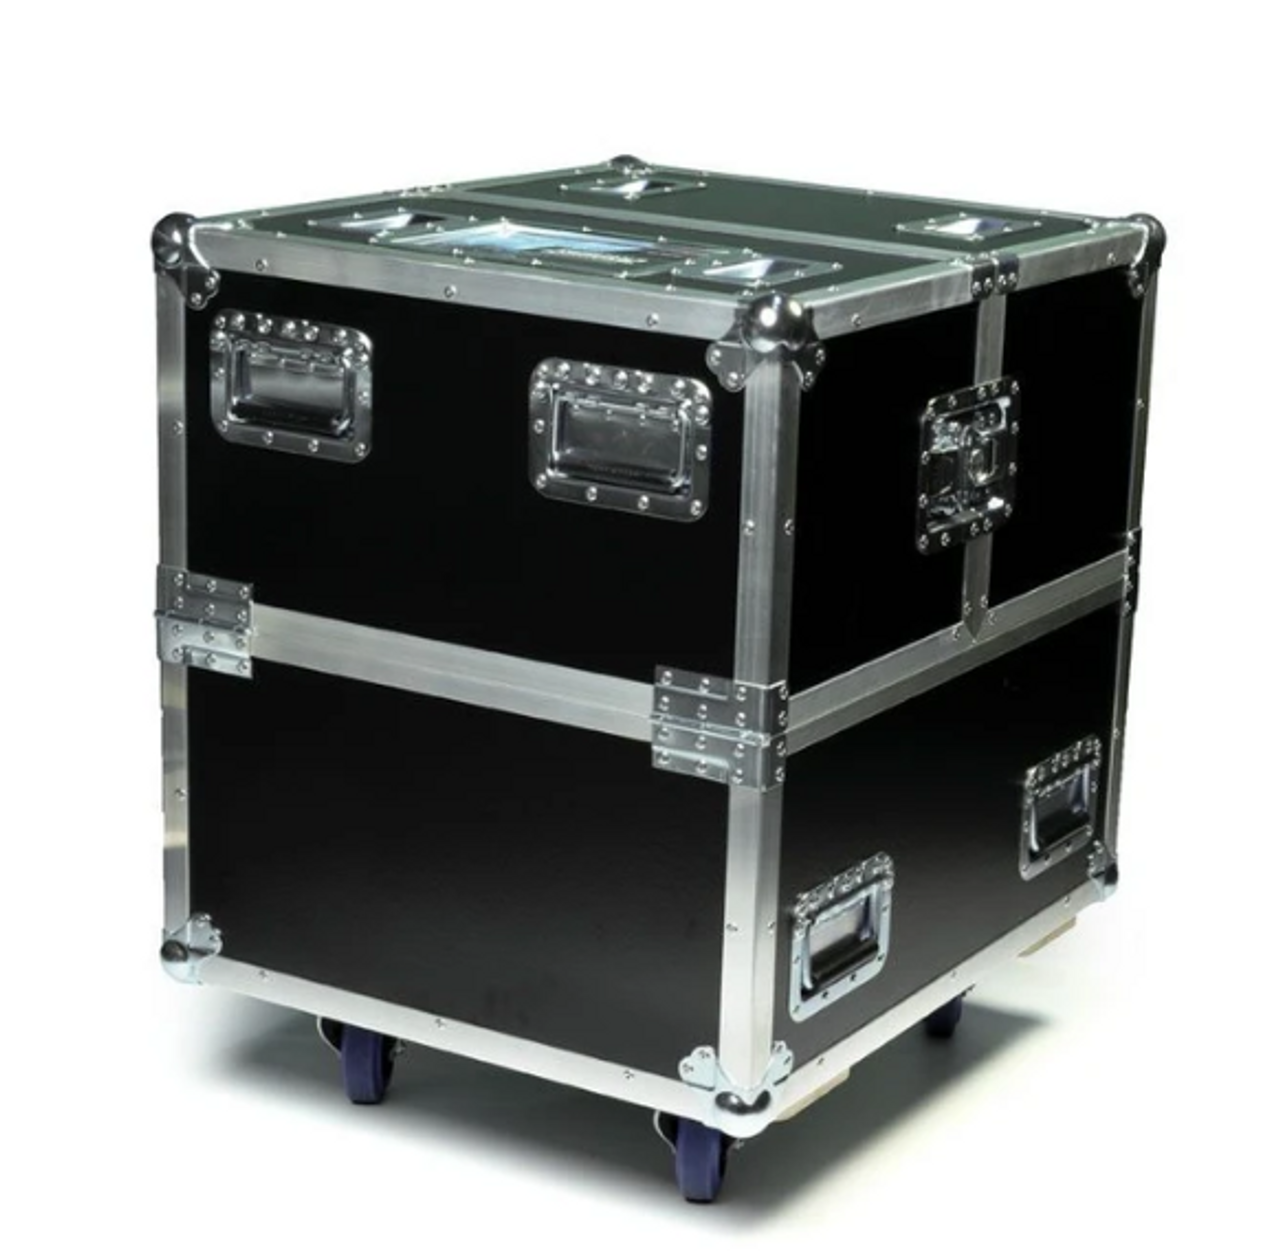 MAGICFX SWIRL FAN II Flight case